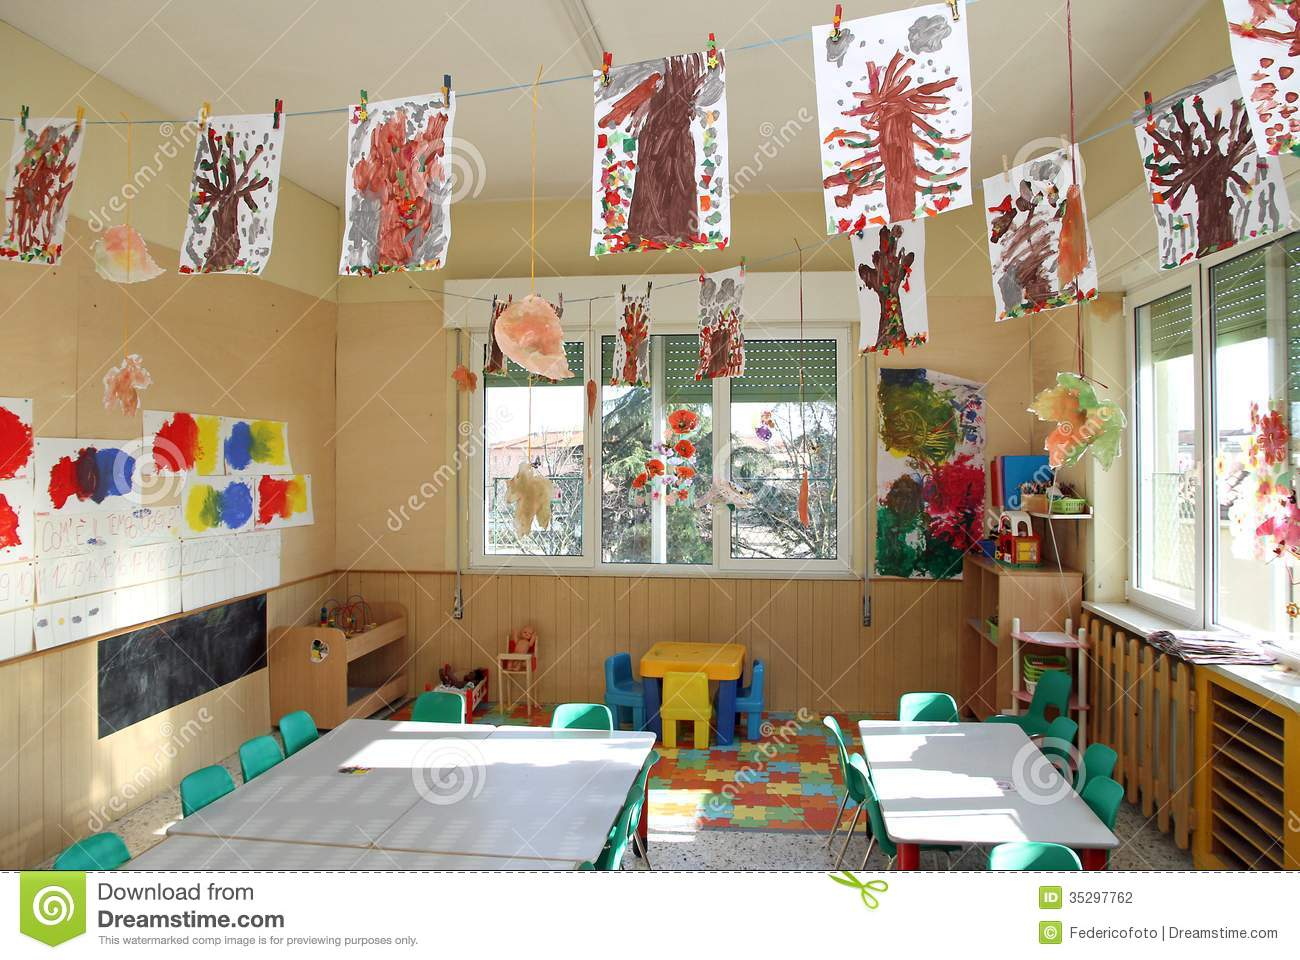 Nursery Class Of Children With Many Drawings Of Trees